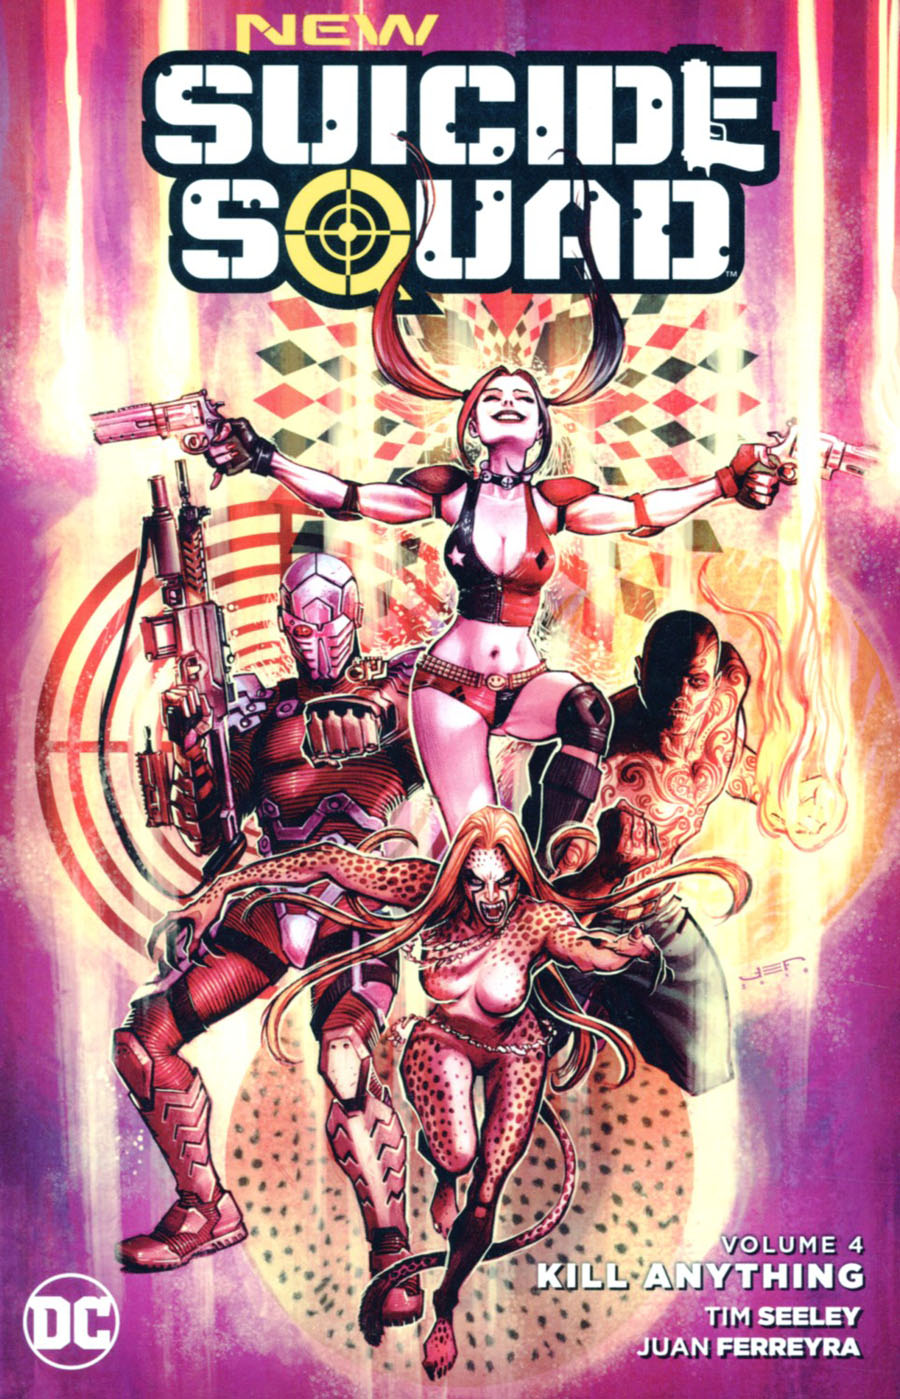 New Suicide Squad (New 52) Vol 4 Kill Anything TP